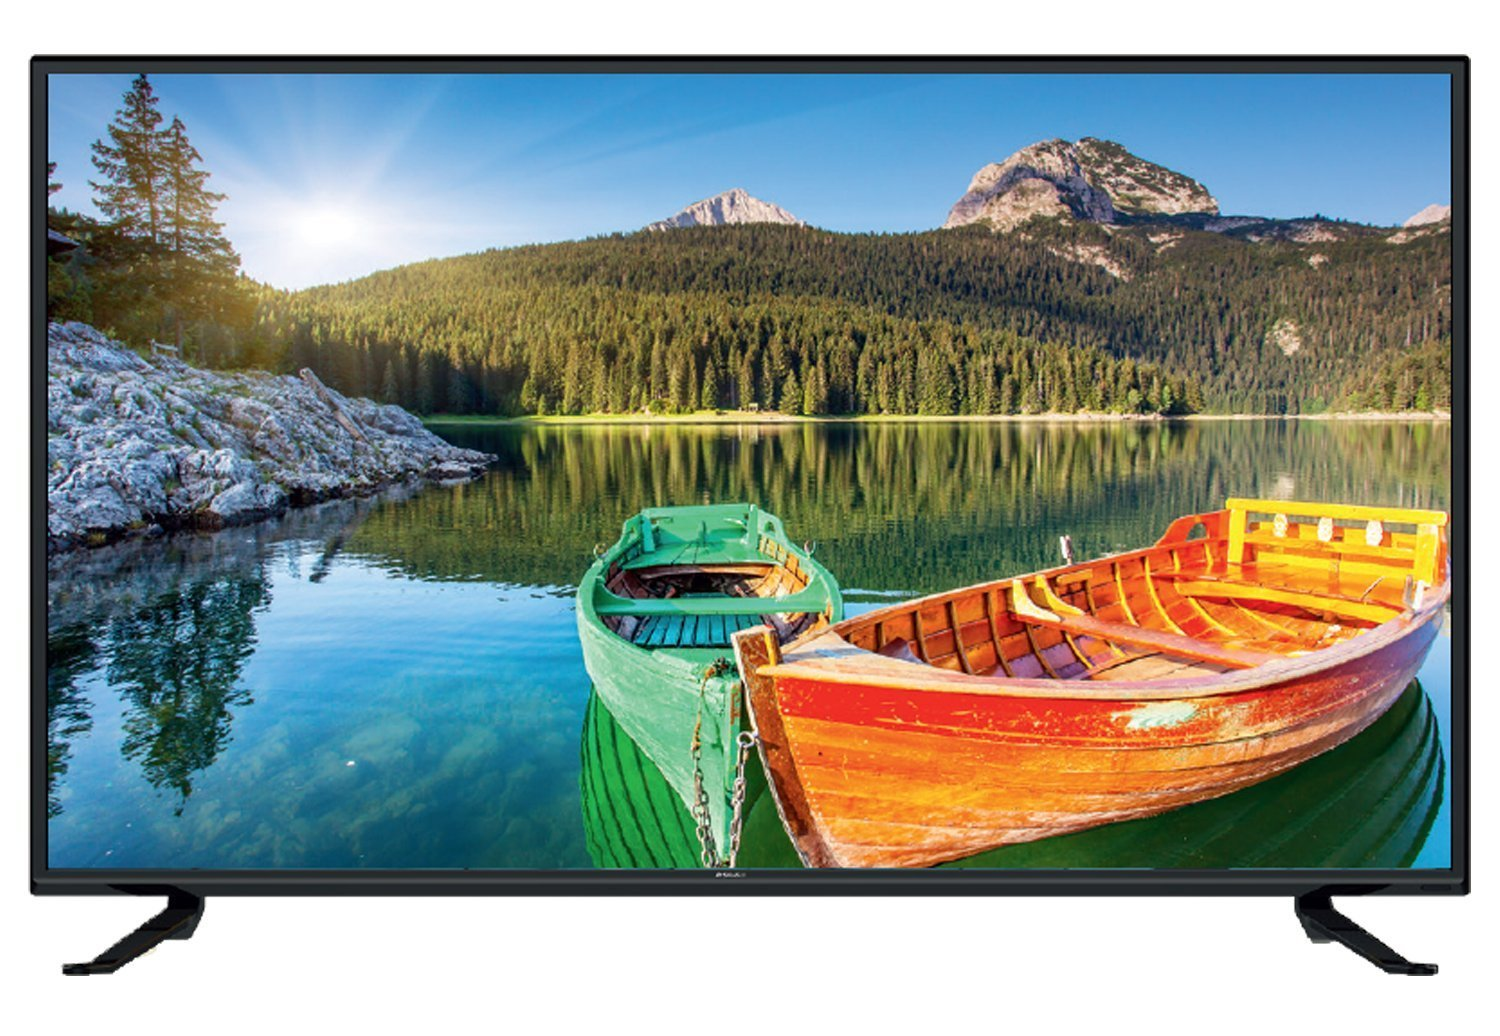 Sansui SMC50FH16X Full HD LED TV Image